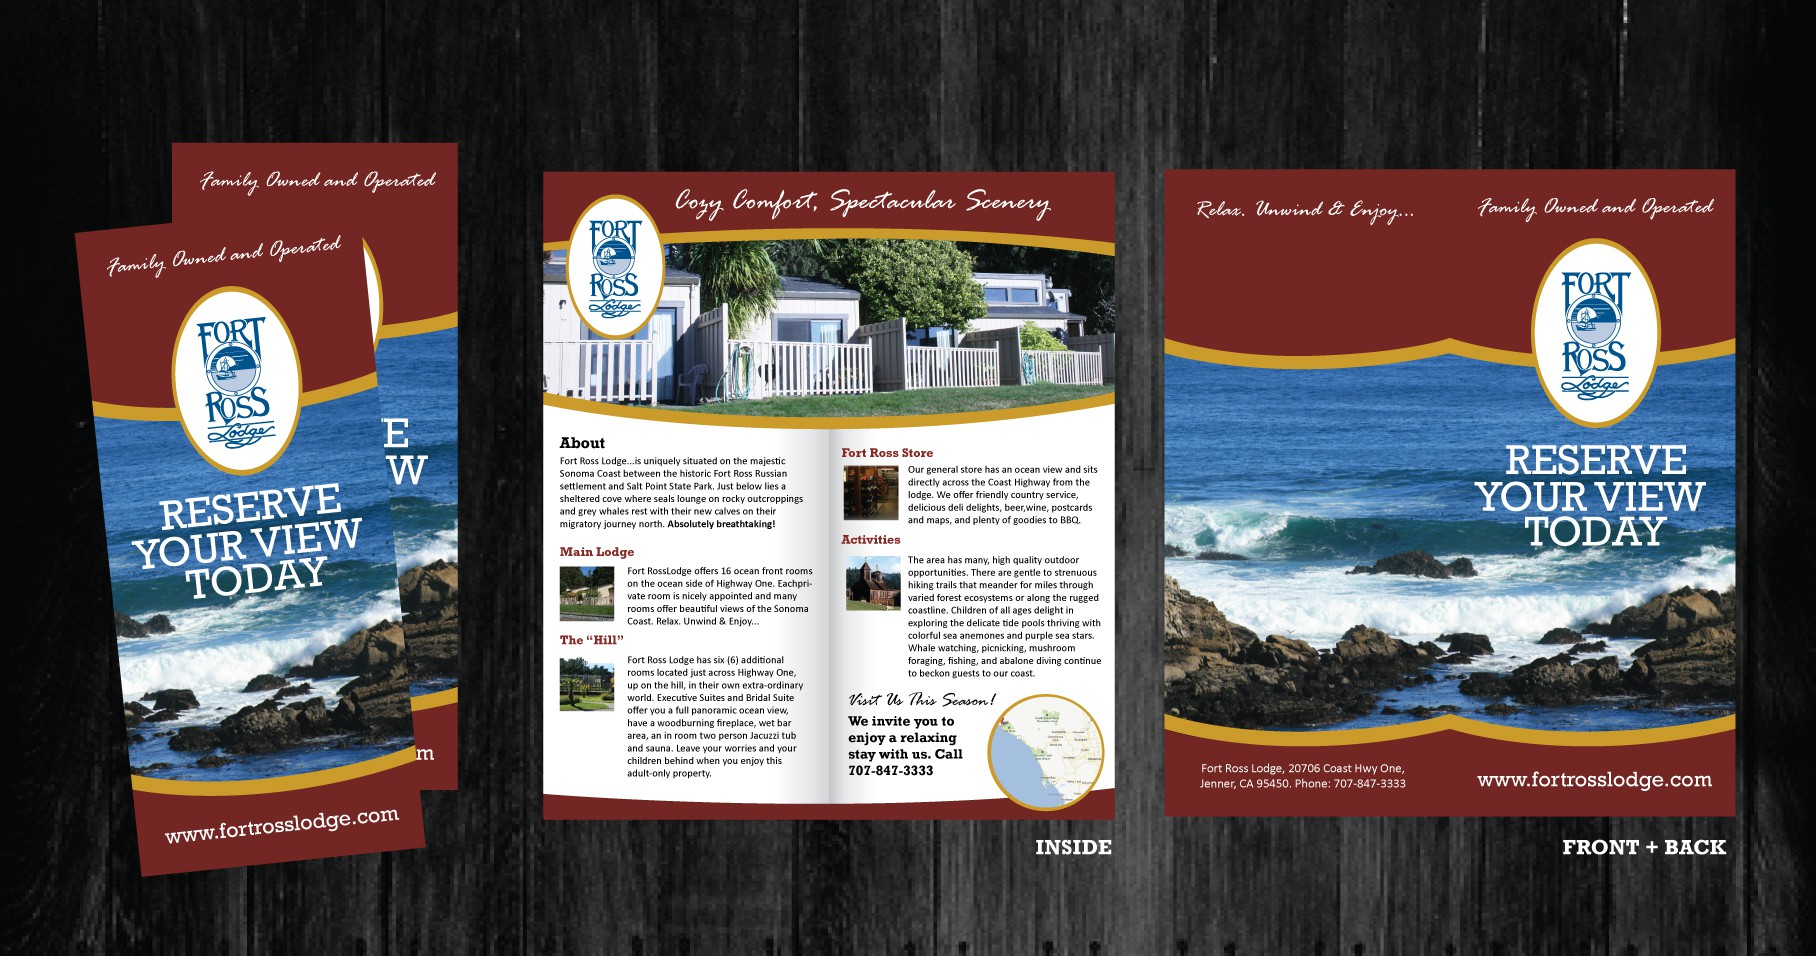 2 Fold brochure design for Fort Ross Lodge